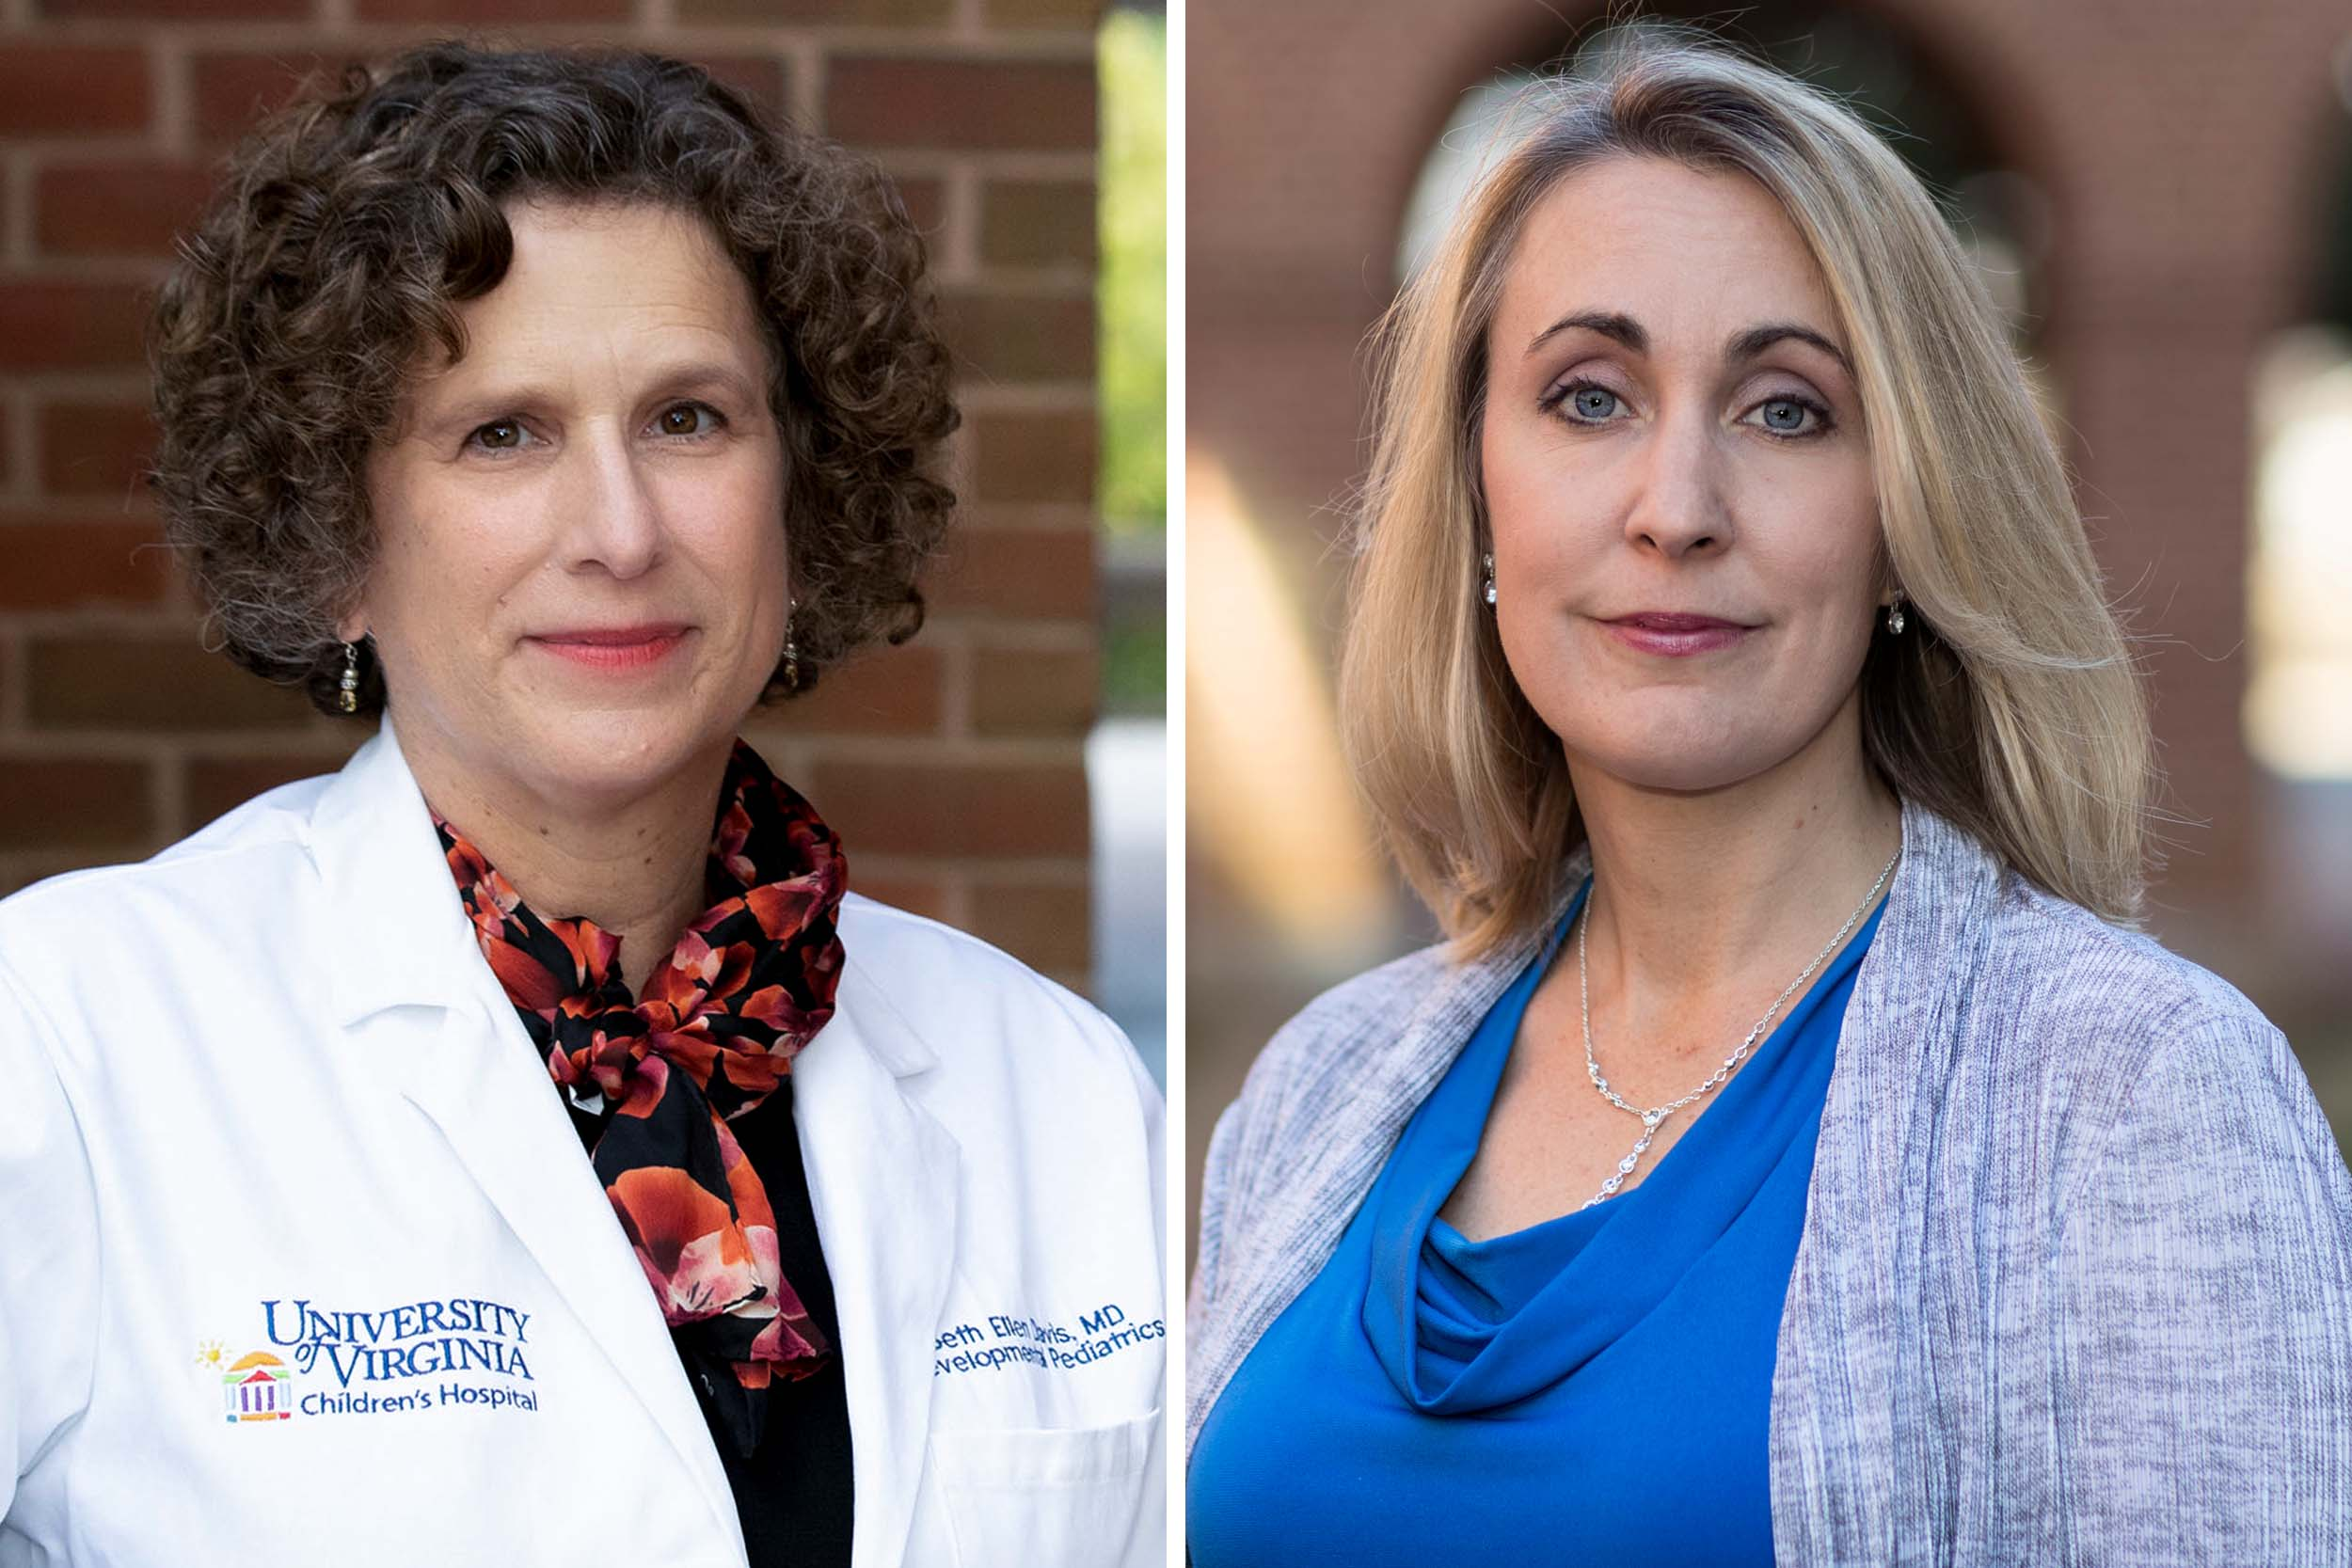 UVA Starts Comprehensive Program to Improve Care for Autism and Other Disabilities